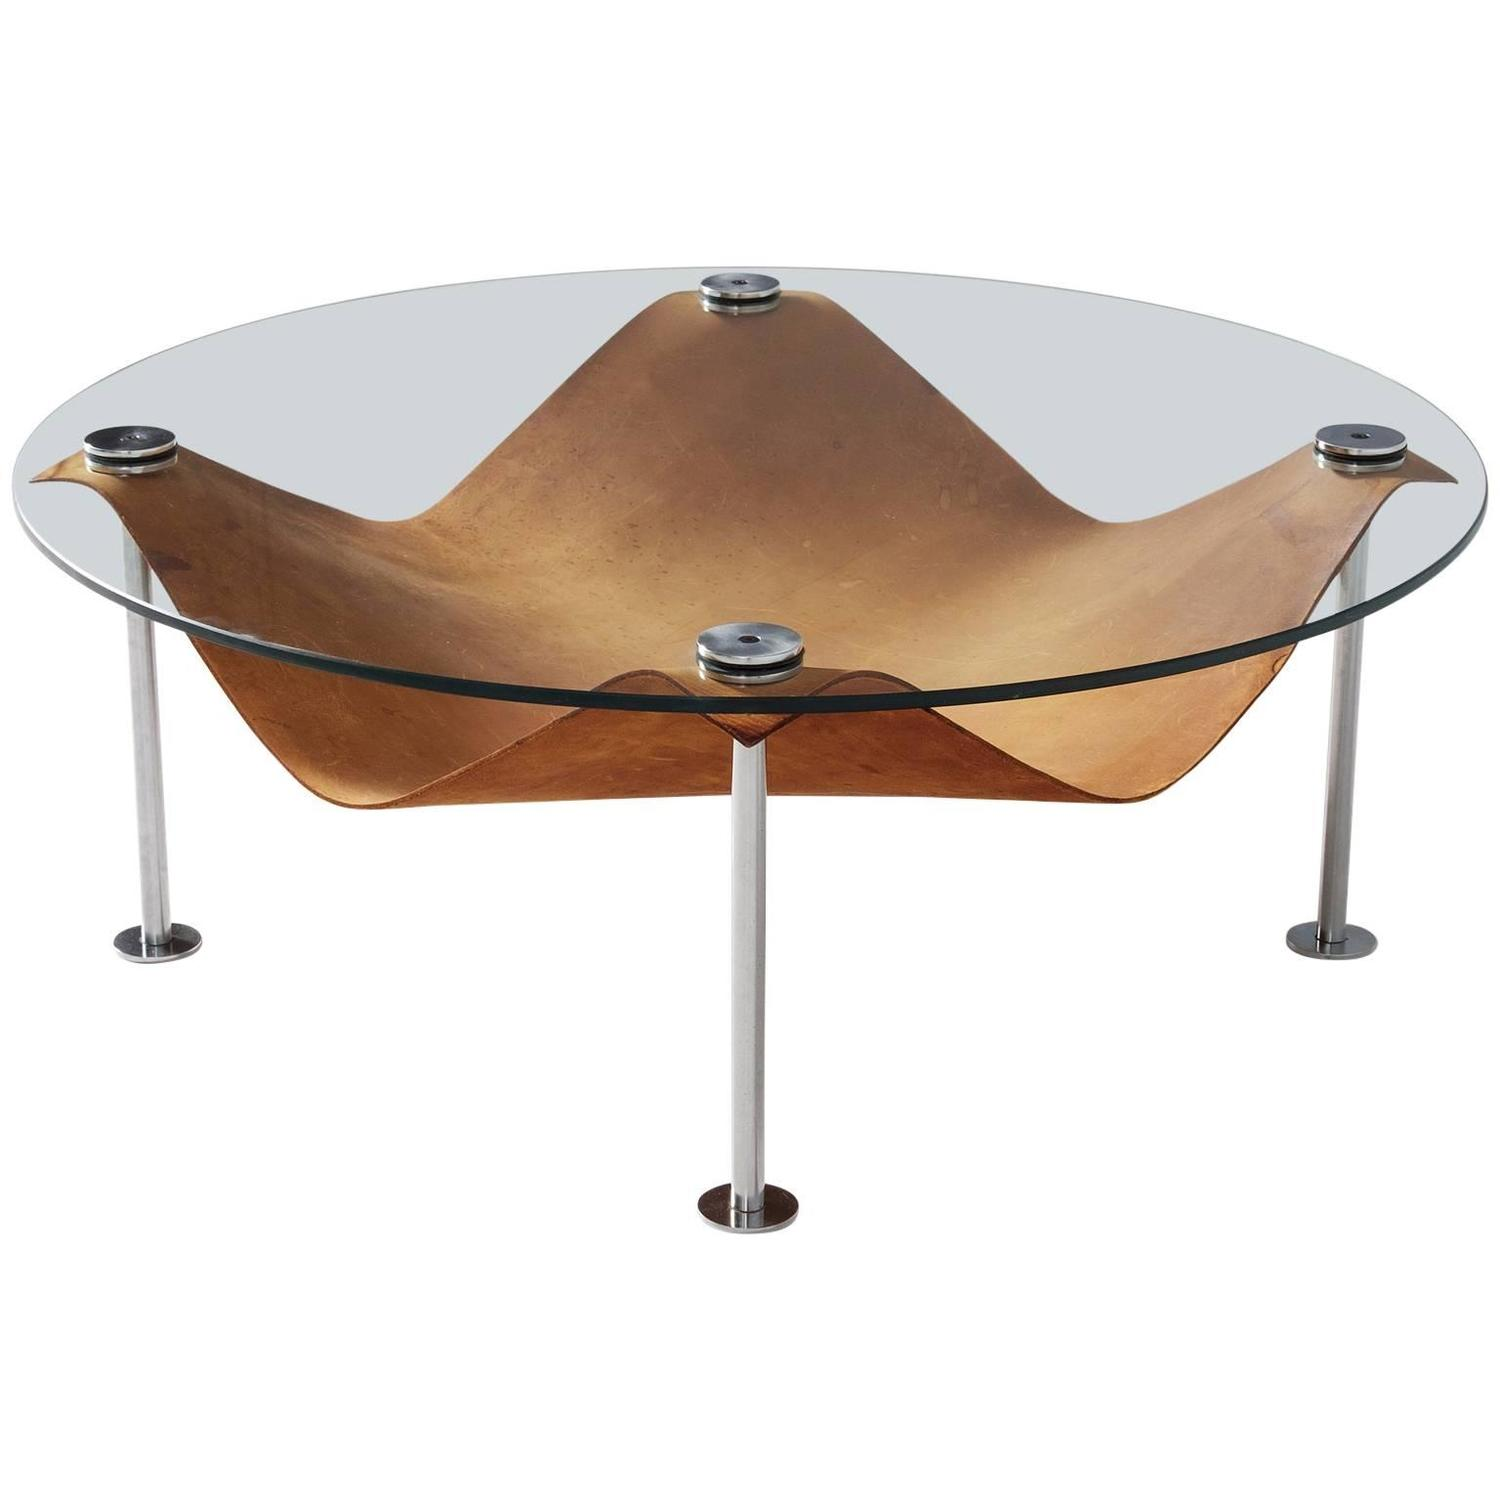 Round coffee table in glass and cognac leather for sale at for Round glass coffee tables for sale